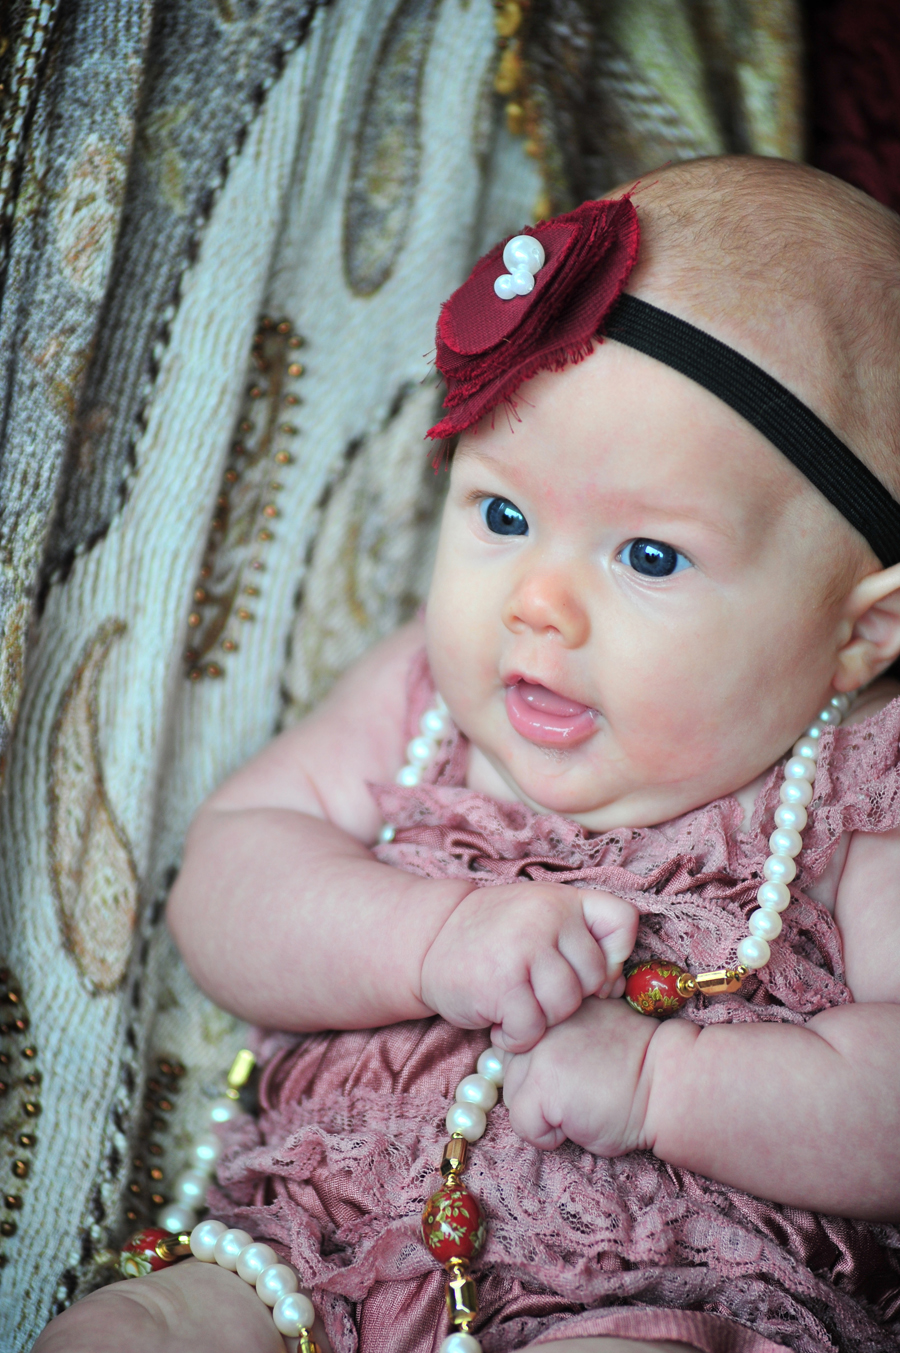 Vintage 1920s Style Glamour Baby  Domestic Geek Girl